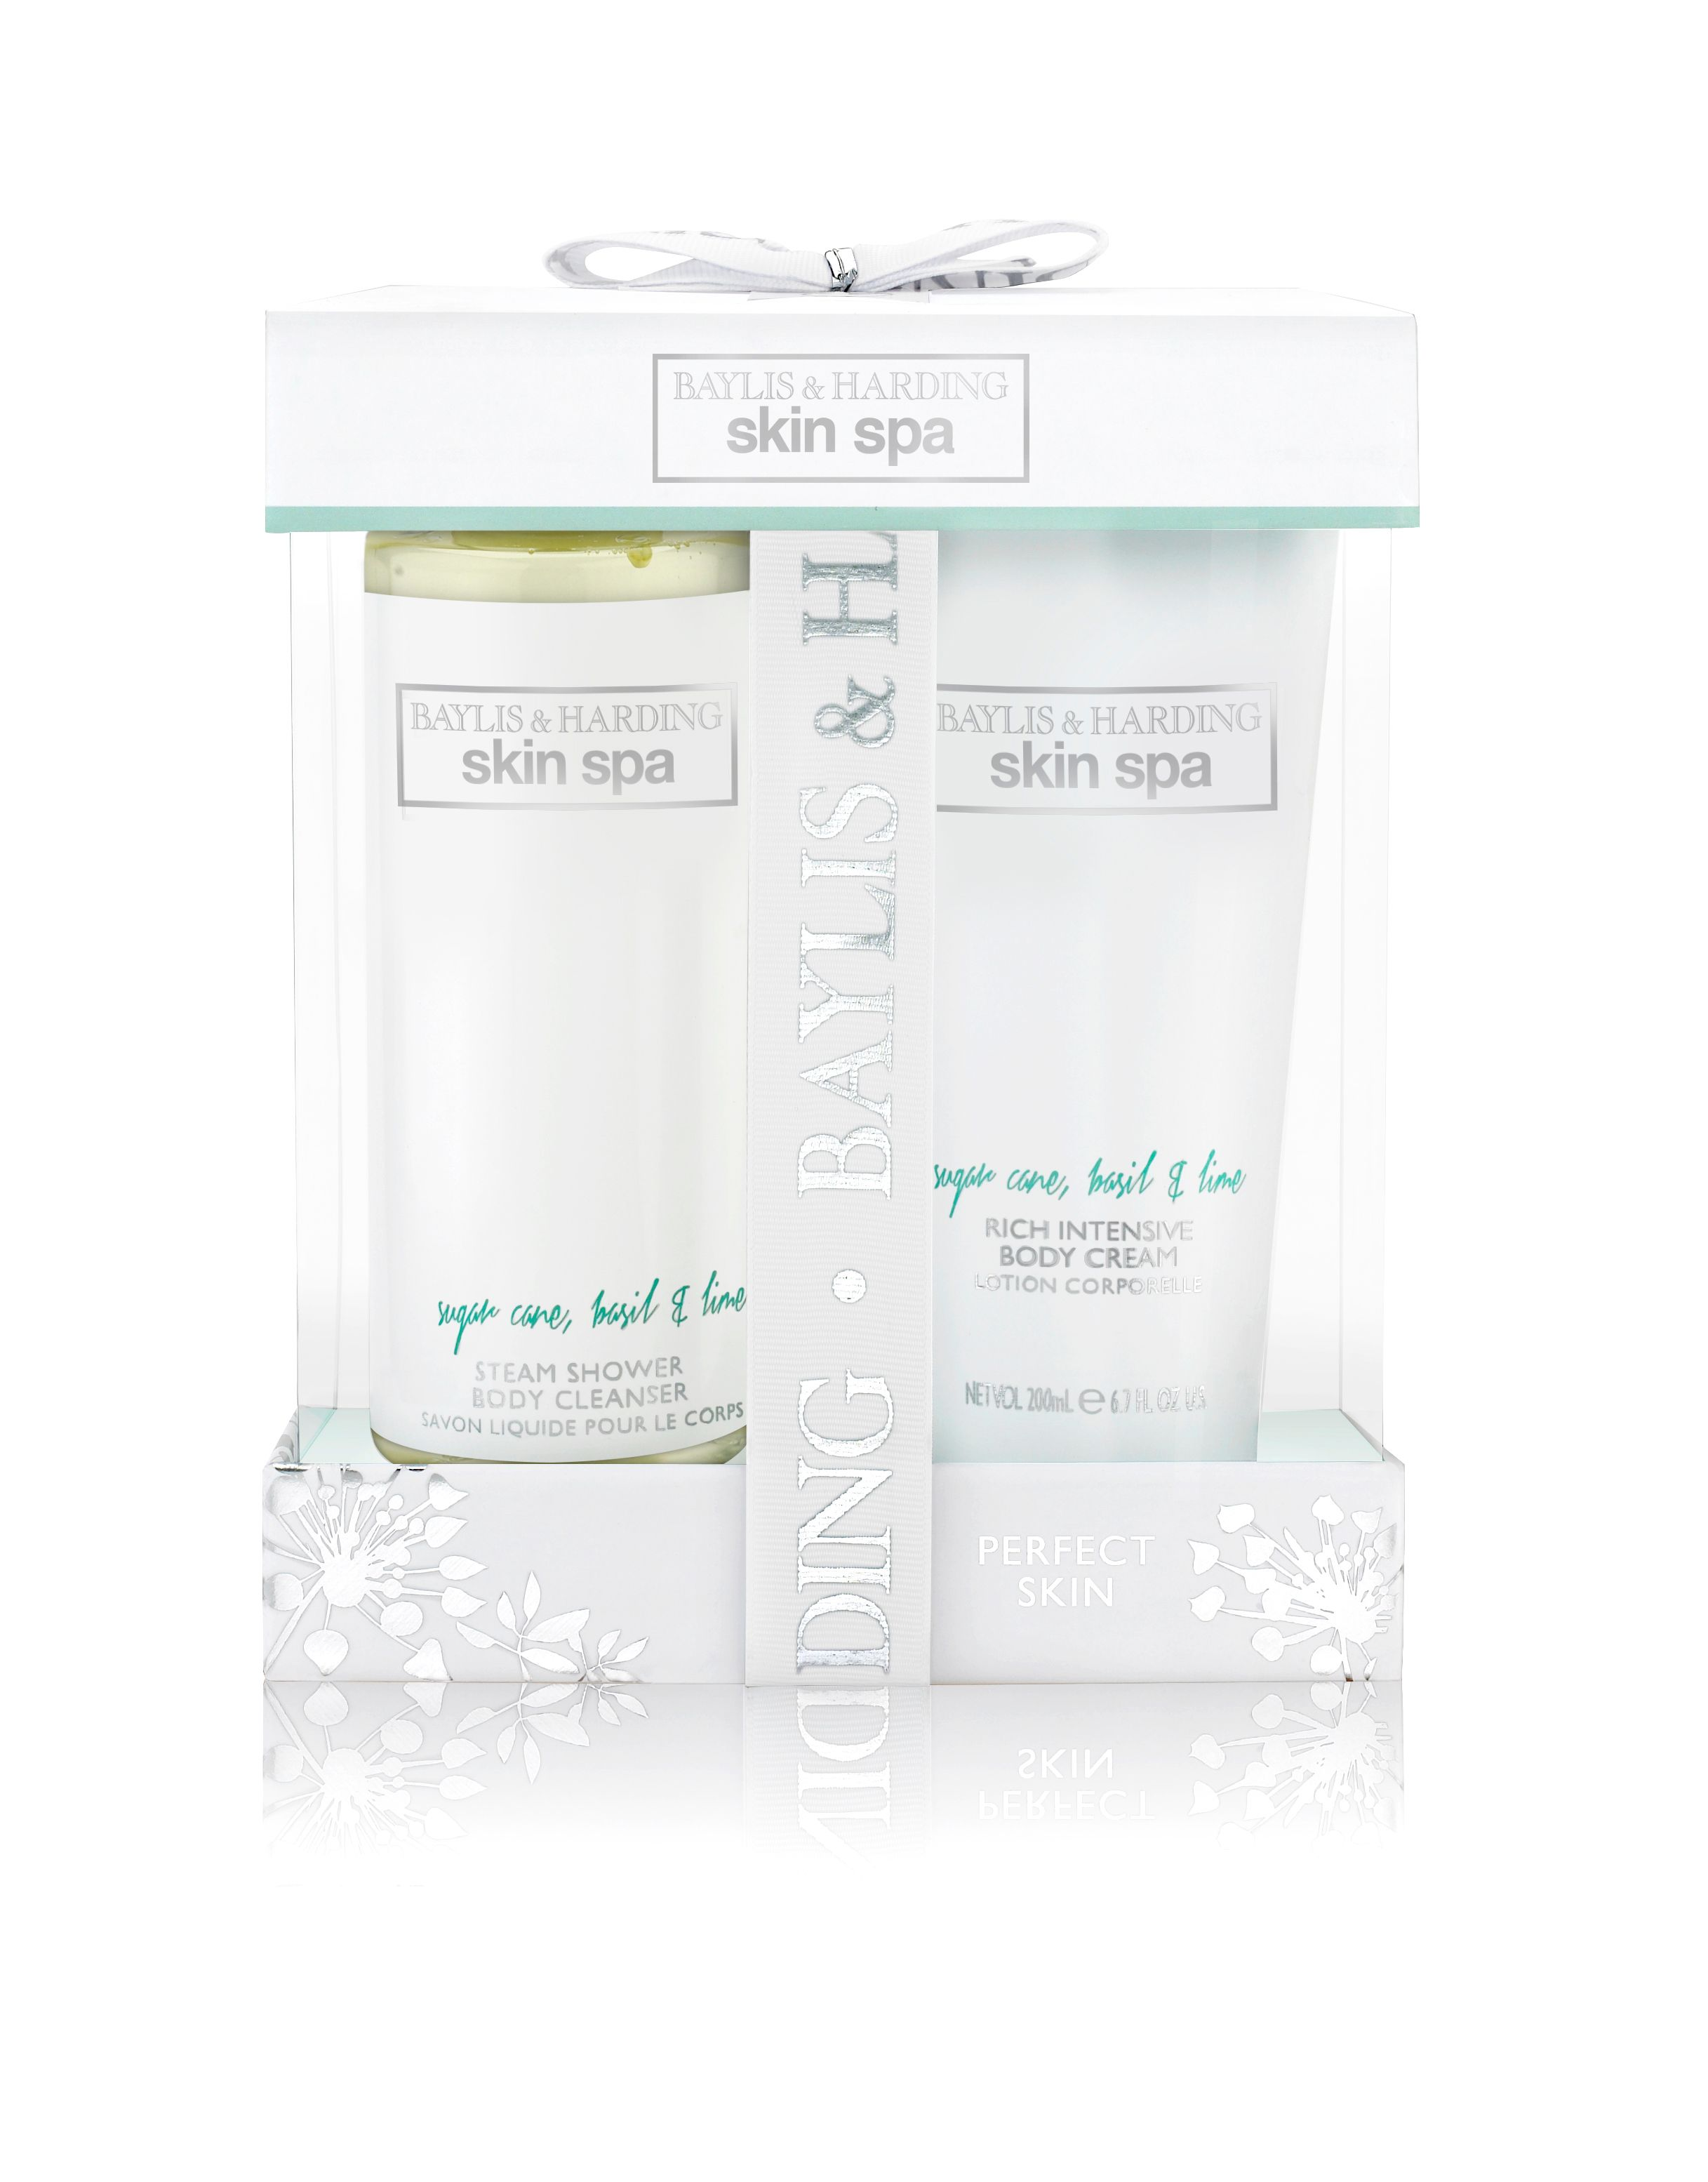 Sugar Cane, Basil & Lime Perfect Skin Duo